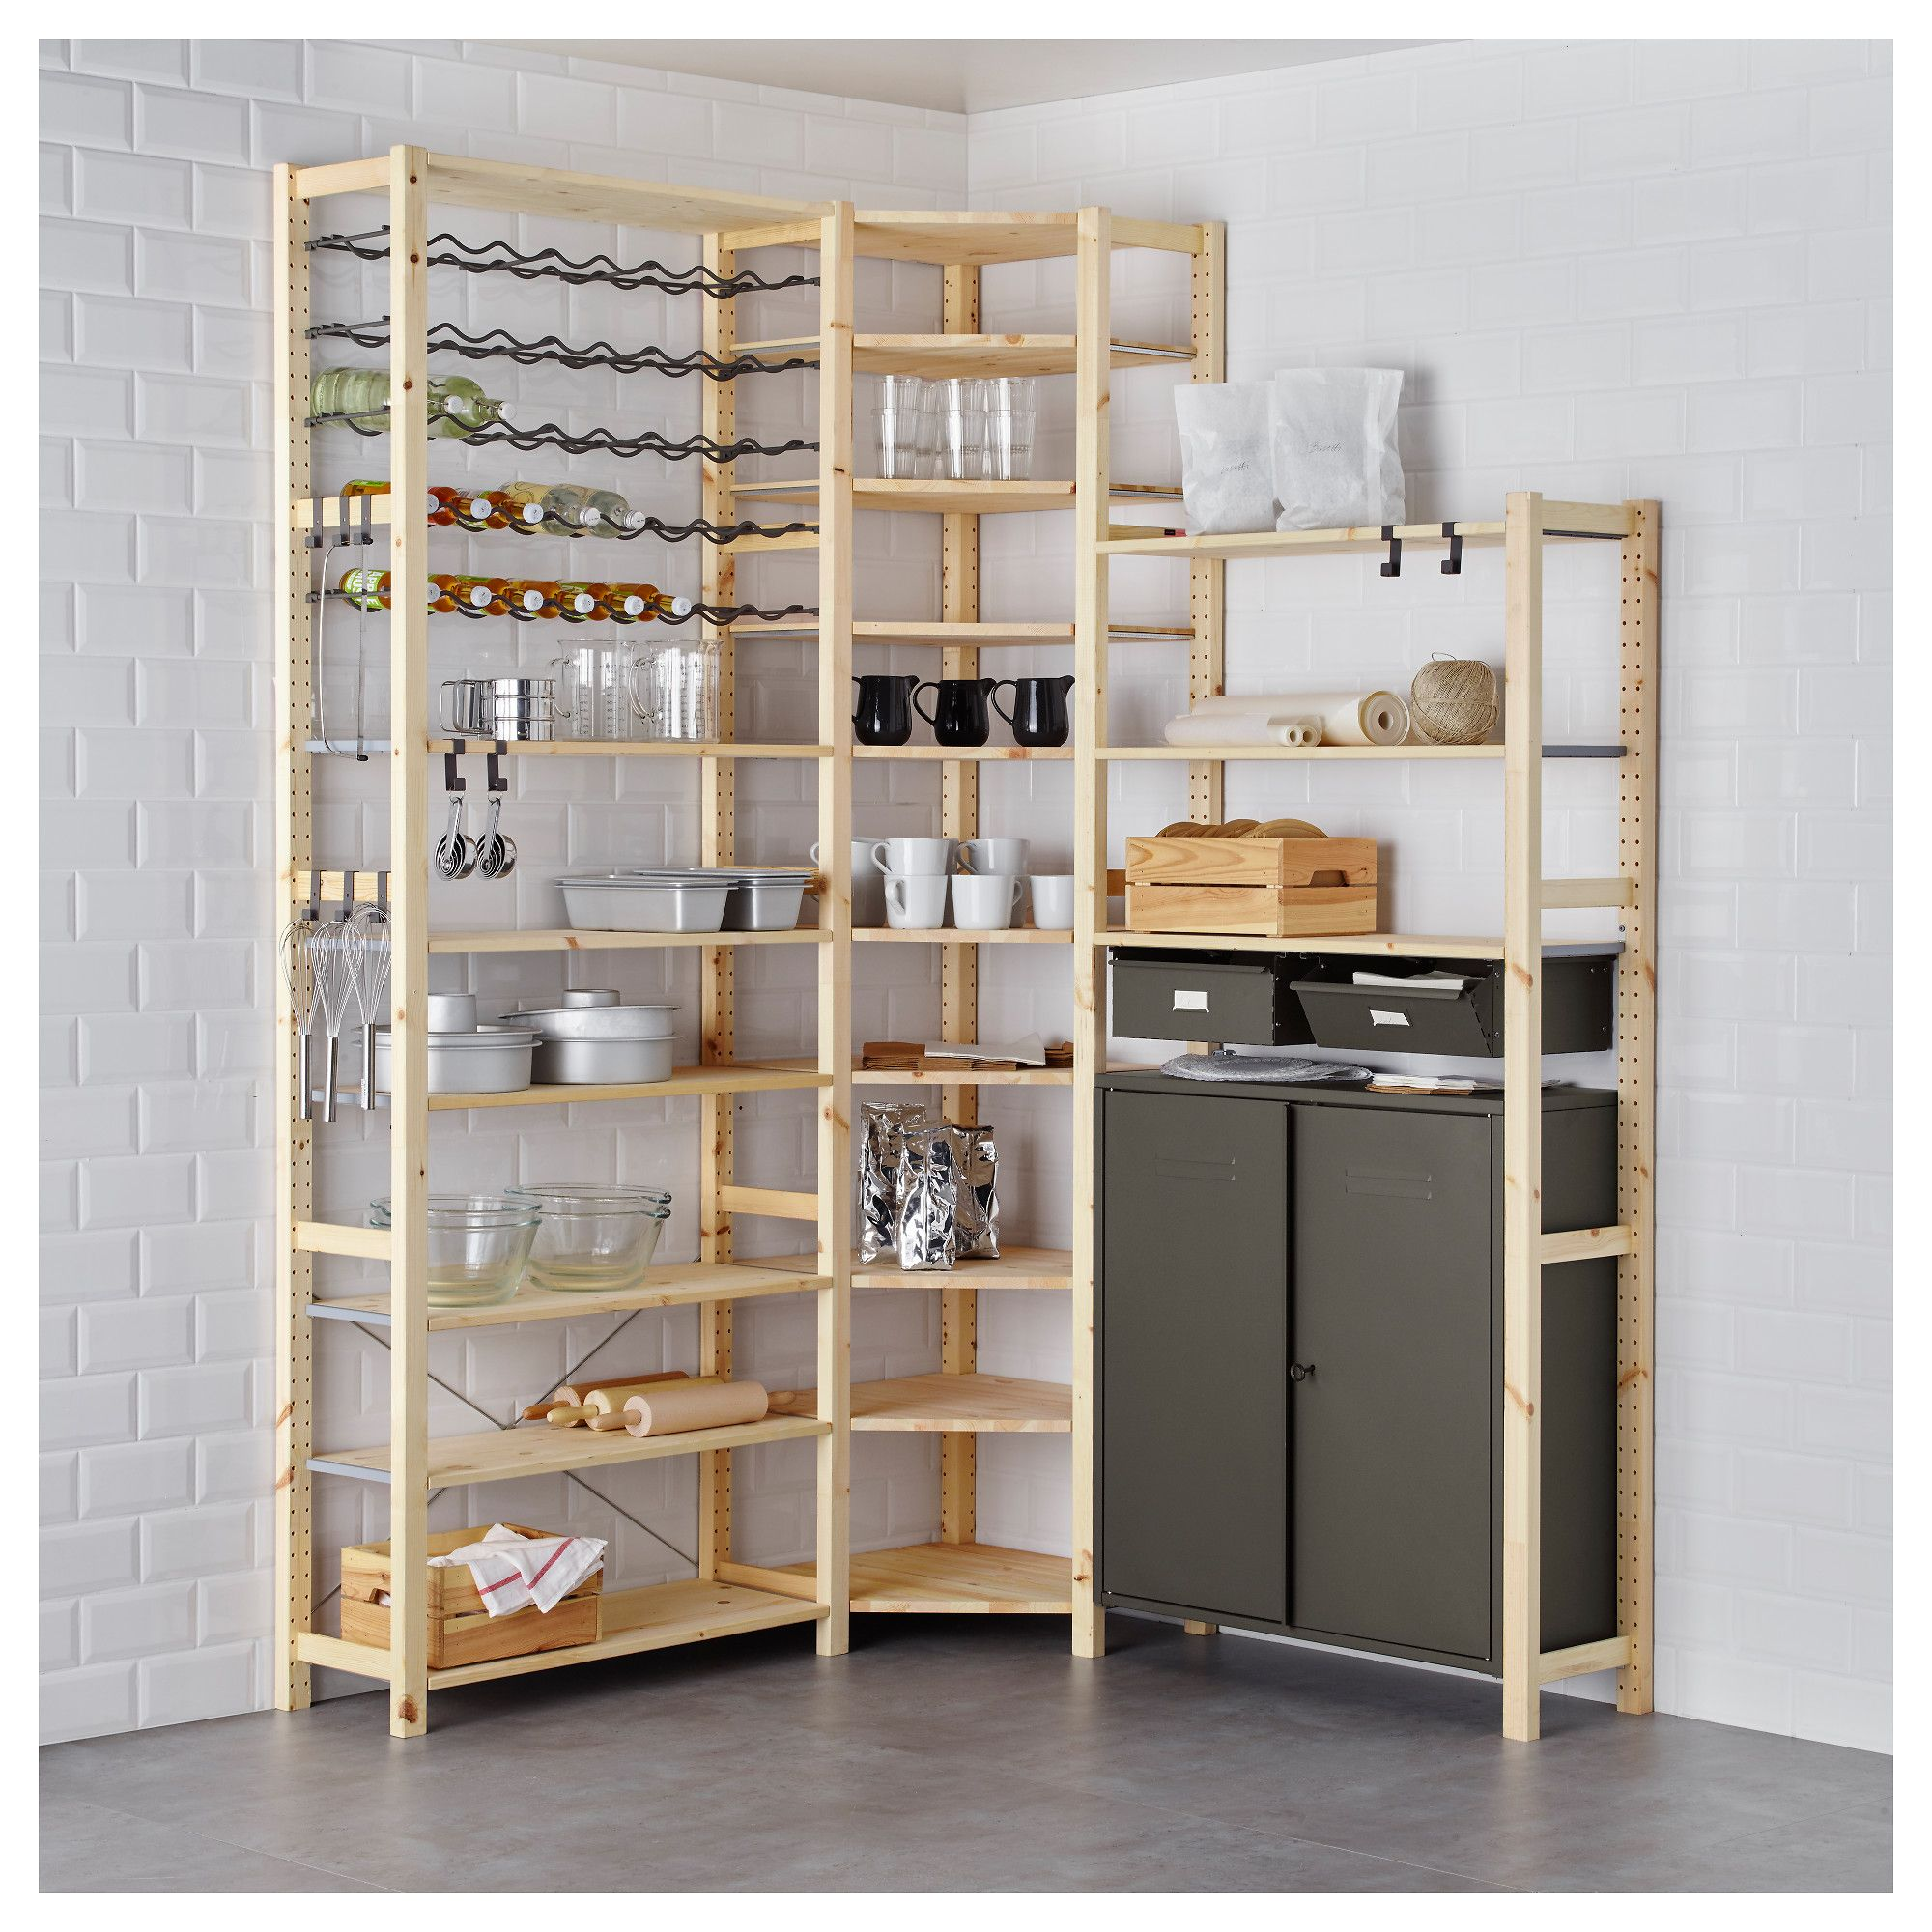 Ikea Cabinets Pantry: IVAR 3 Section Shelving Unit W/cabinets, Pine, Gray